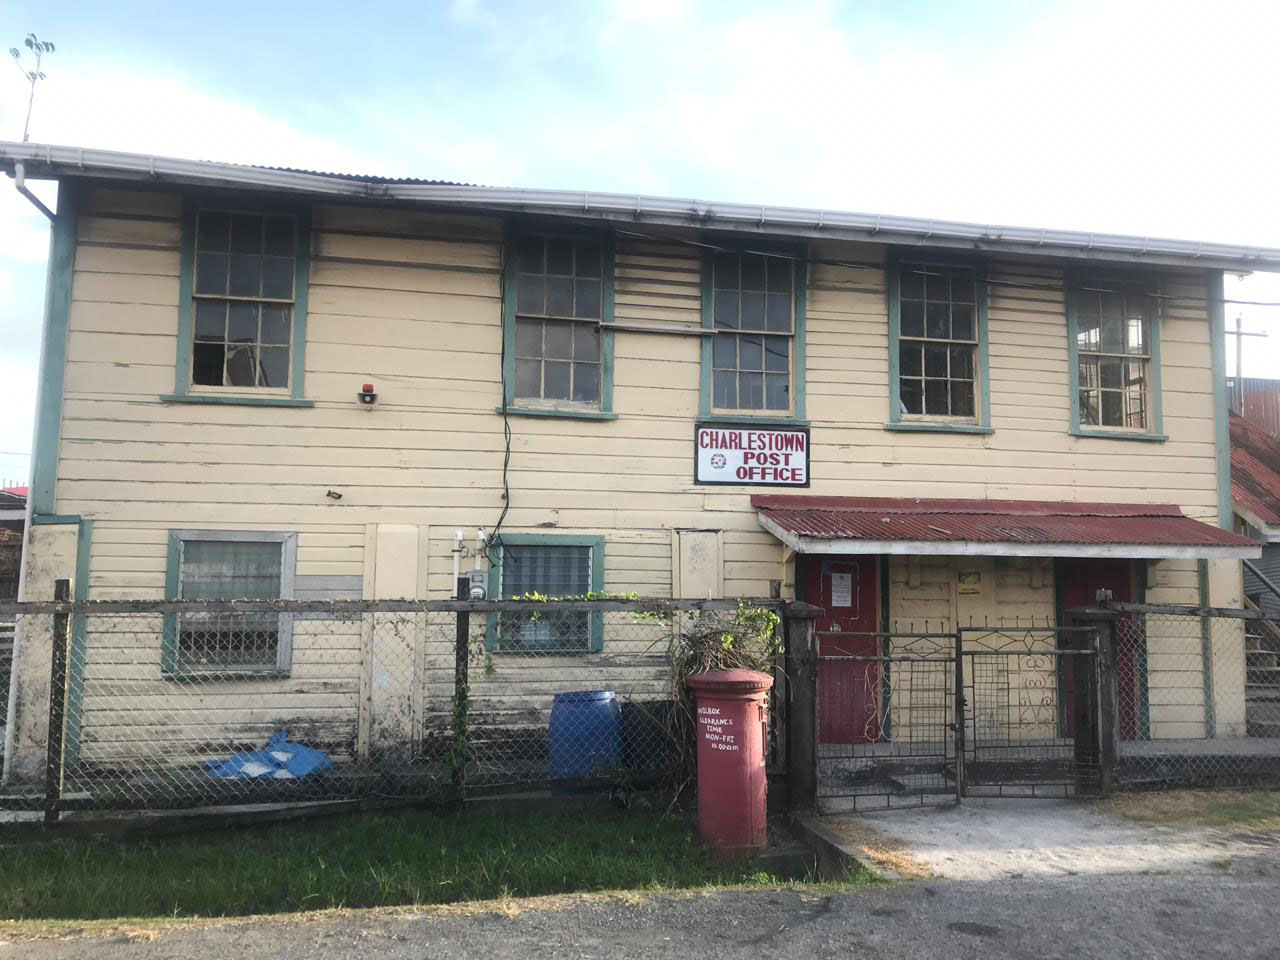 Charlestown Post Office to close from May 2nd - Stabroek News